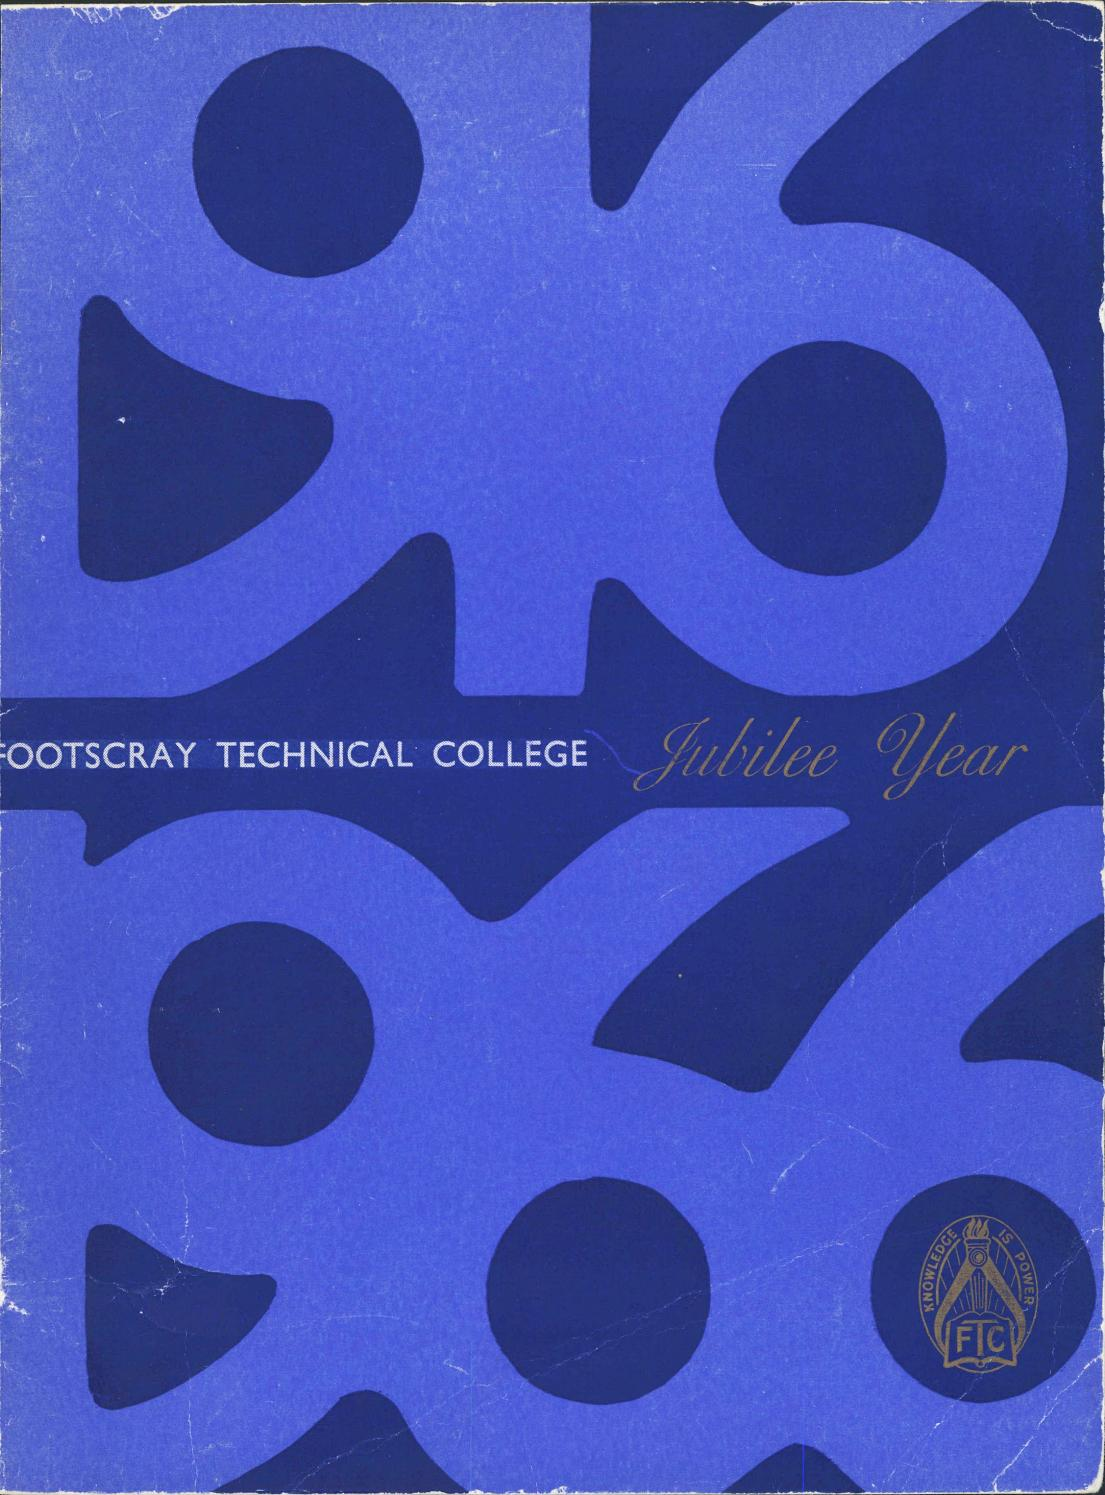 Footscray Technical College Blue And Gold 1965 Vol 6 No 4 By 0654277 Carling 50 Amp Red Black Boat On Off Rocker Circuit Breaker Victoria University Issuu